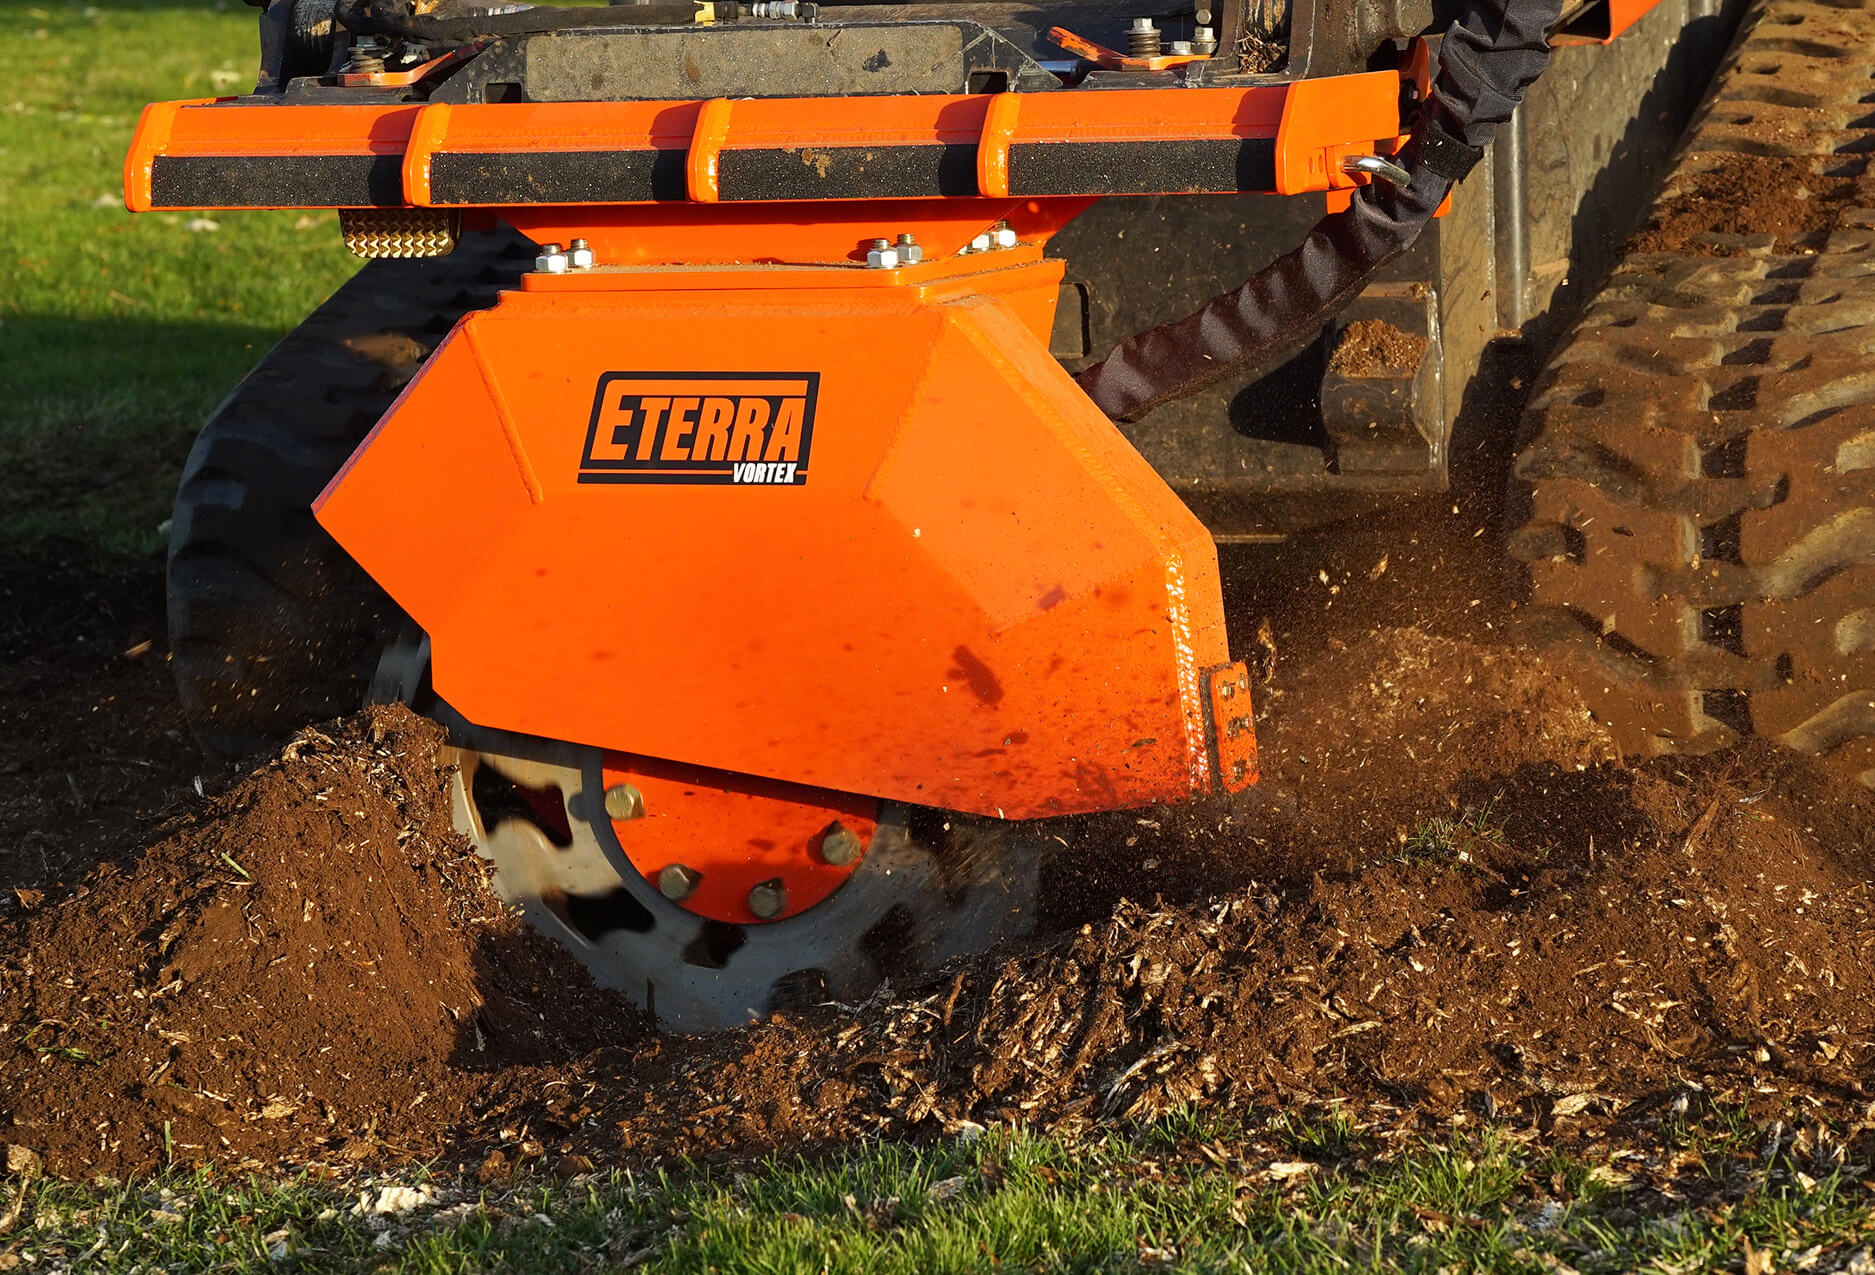 Vortex skid steer stump grinder action